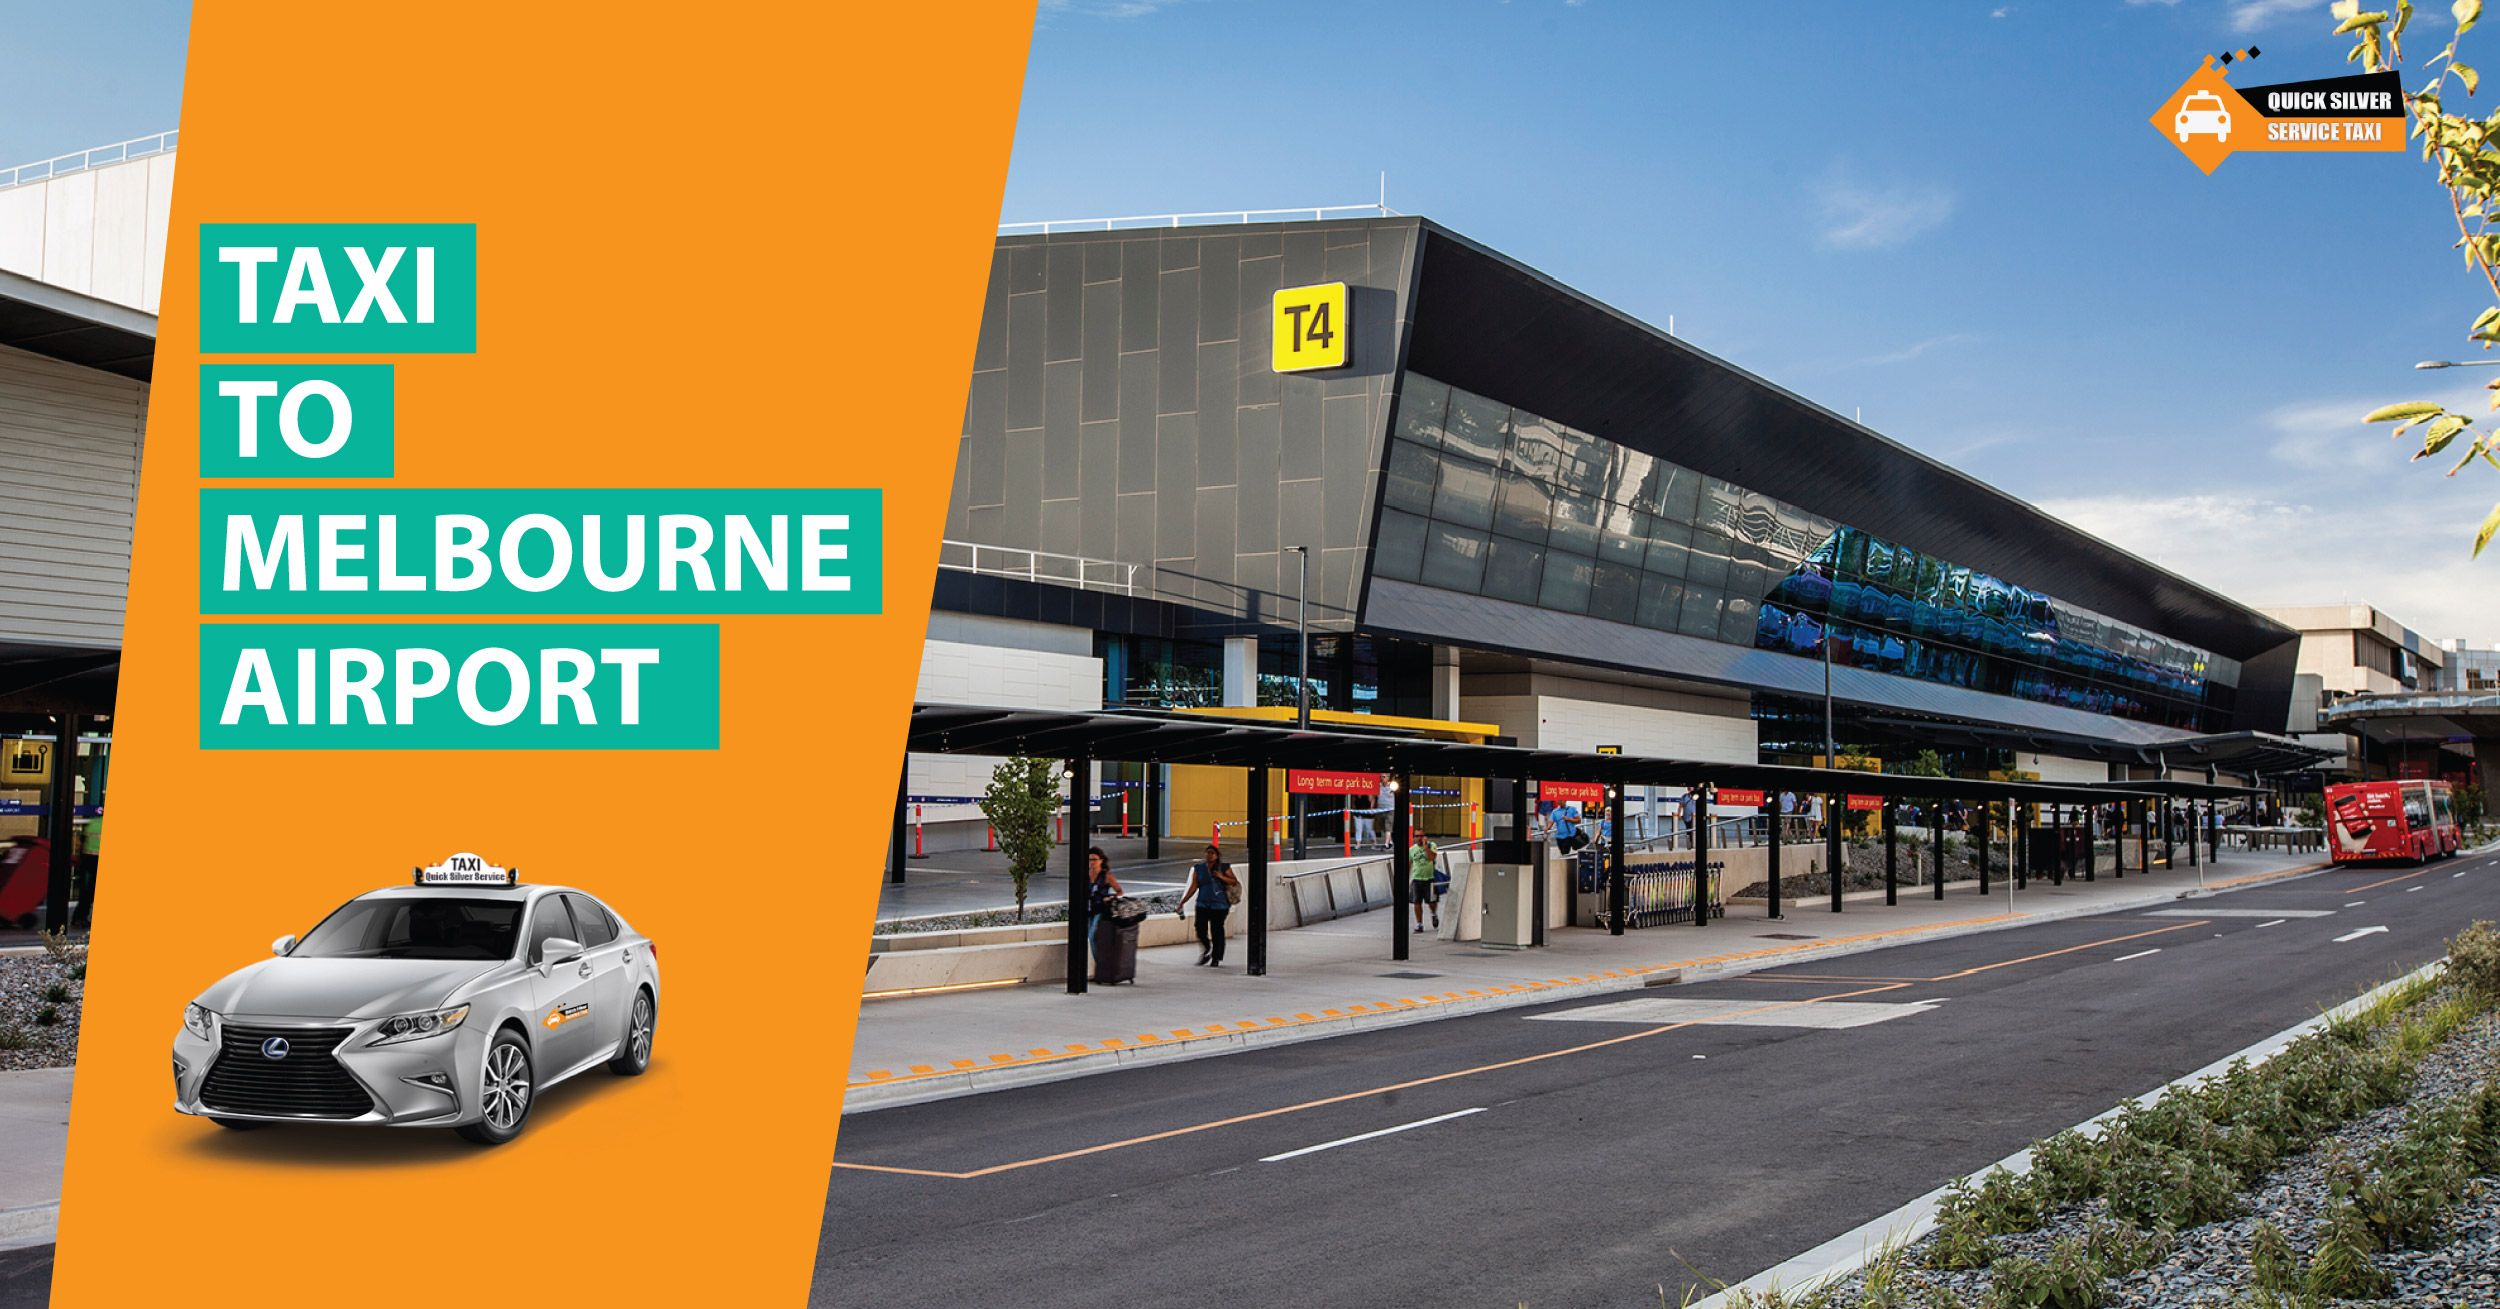 Taxi To Melbourne Airport Melbourne Airport Melbourne Taxi